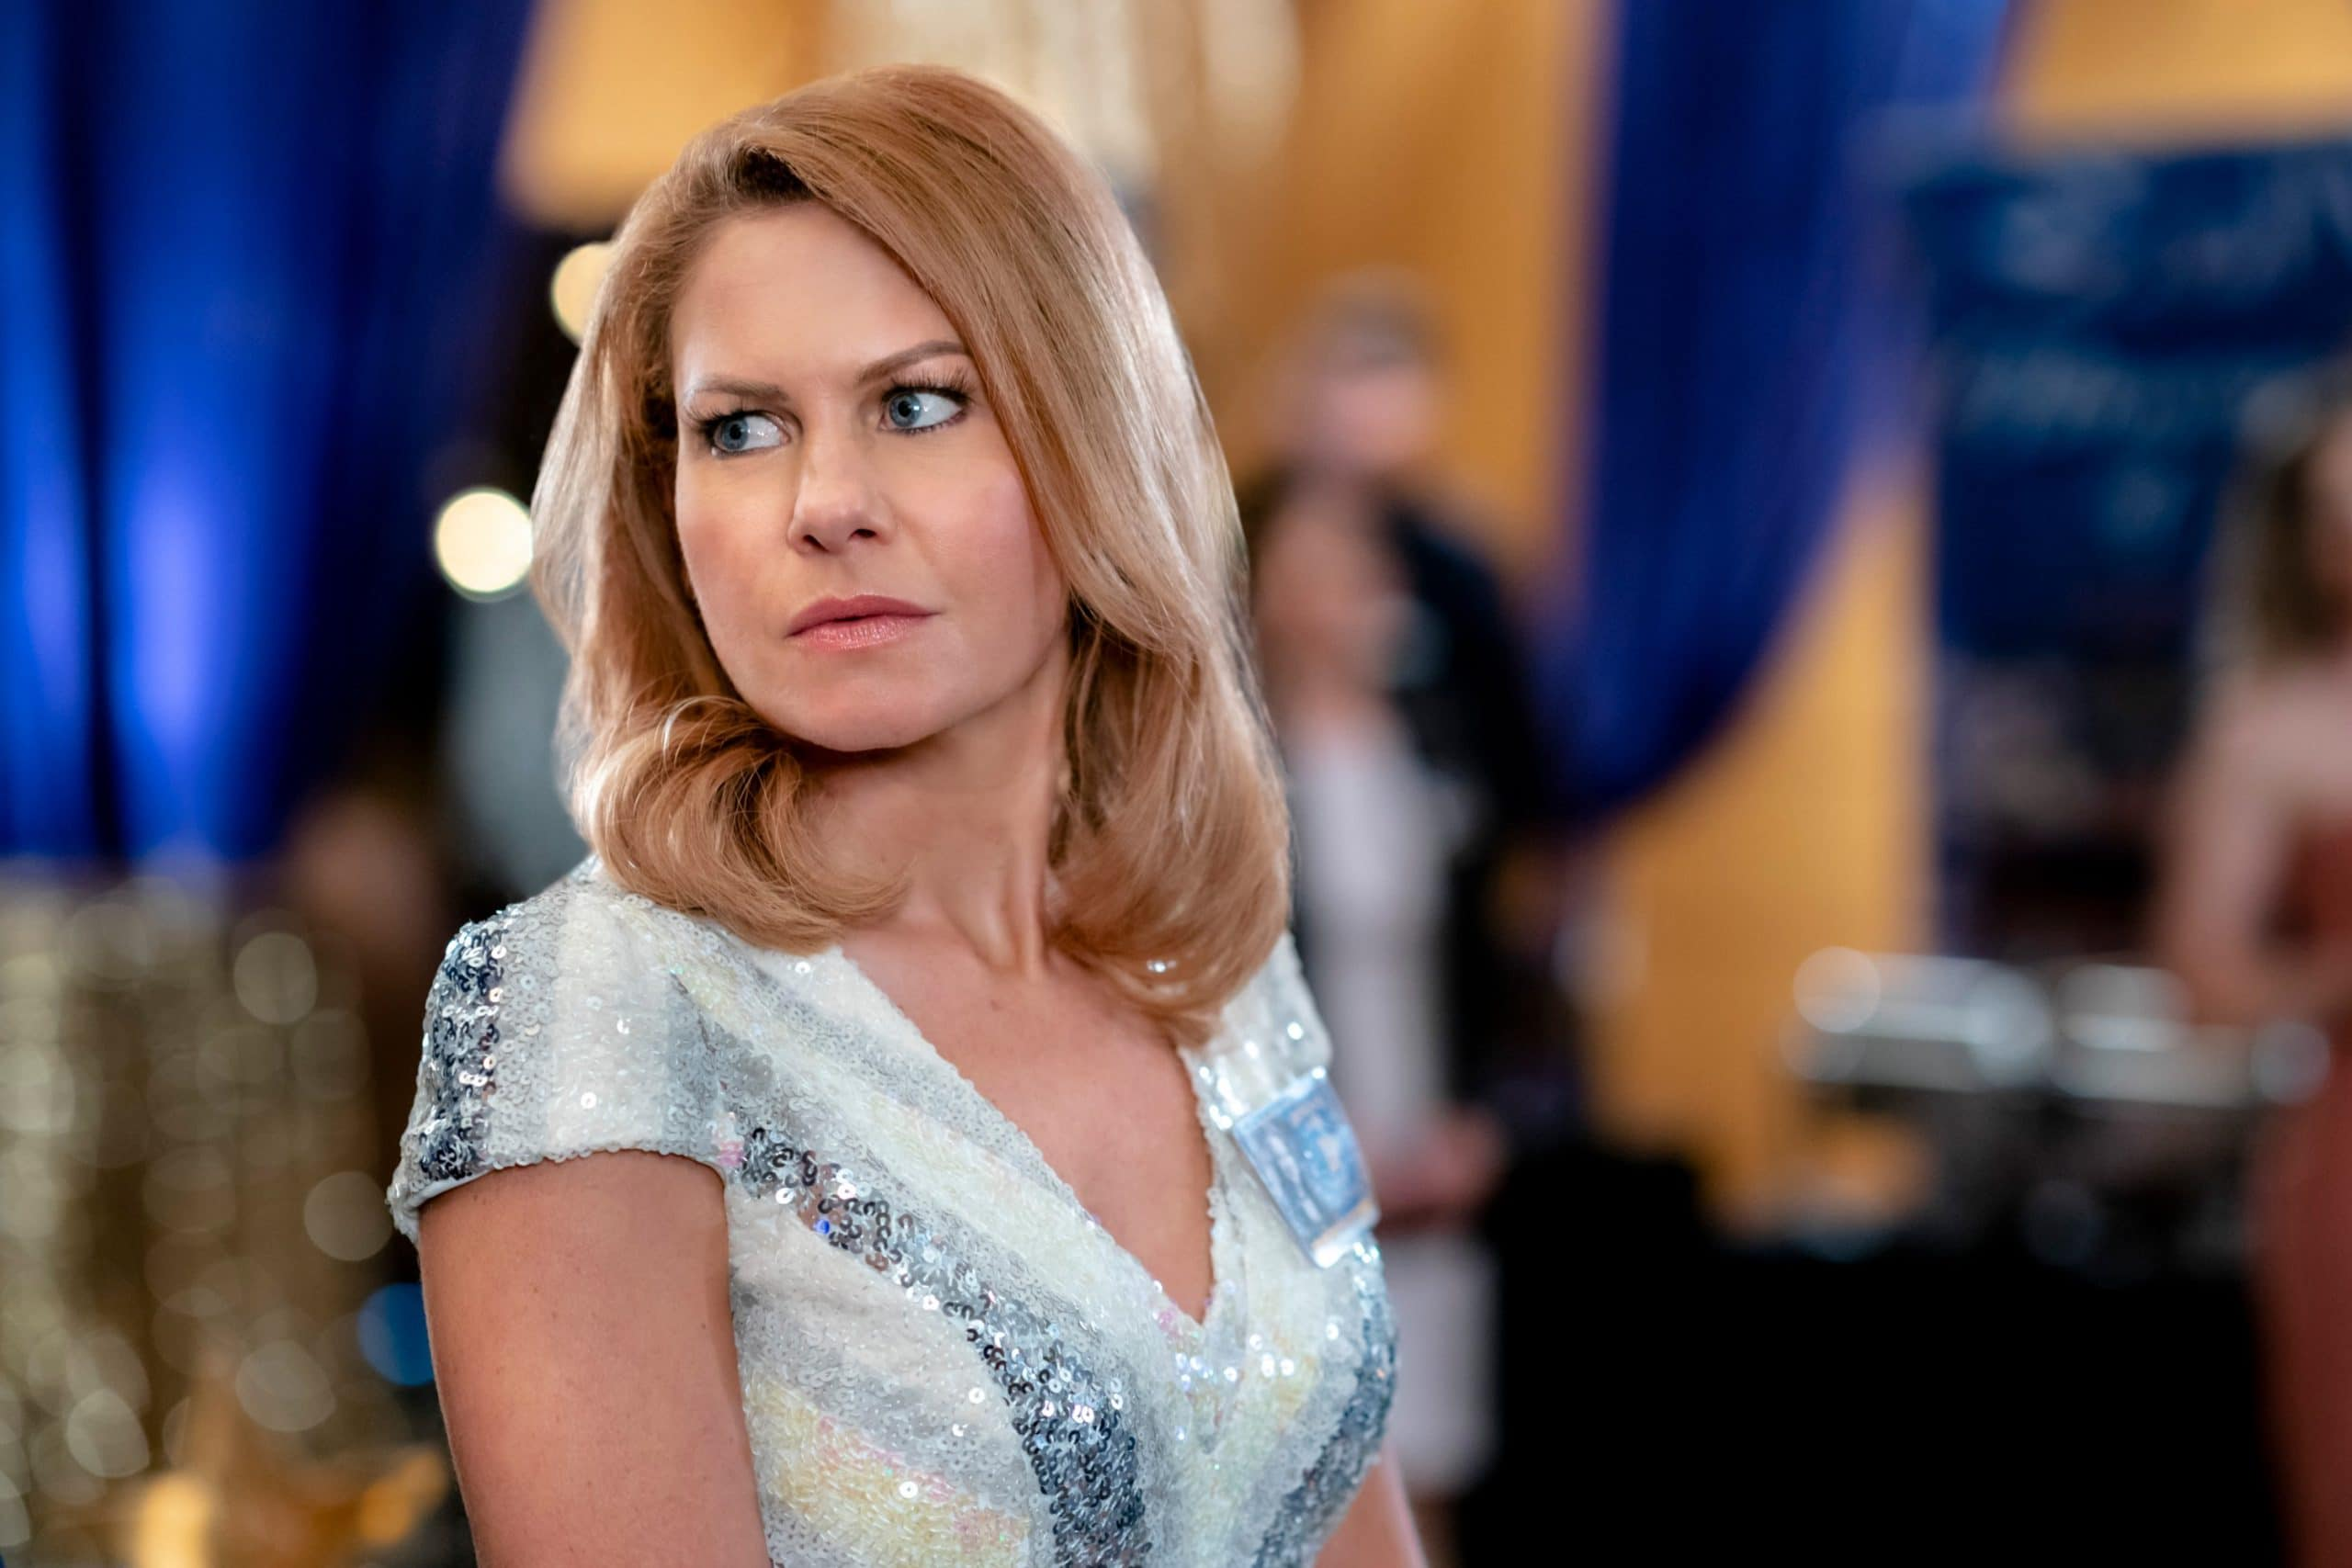 Candace Cameron Bure Says This Hallmark Film Made Her 'Sick To Her Stomach'